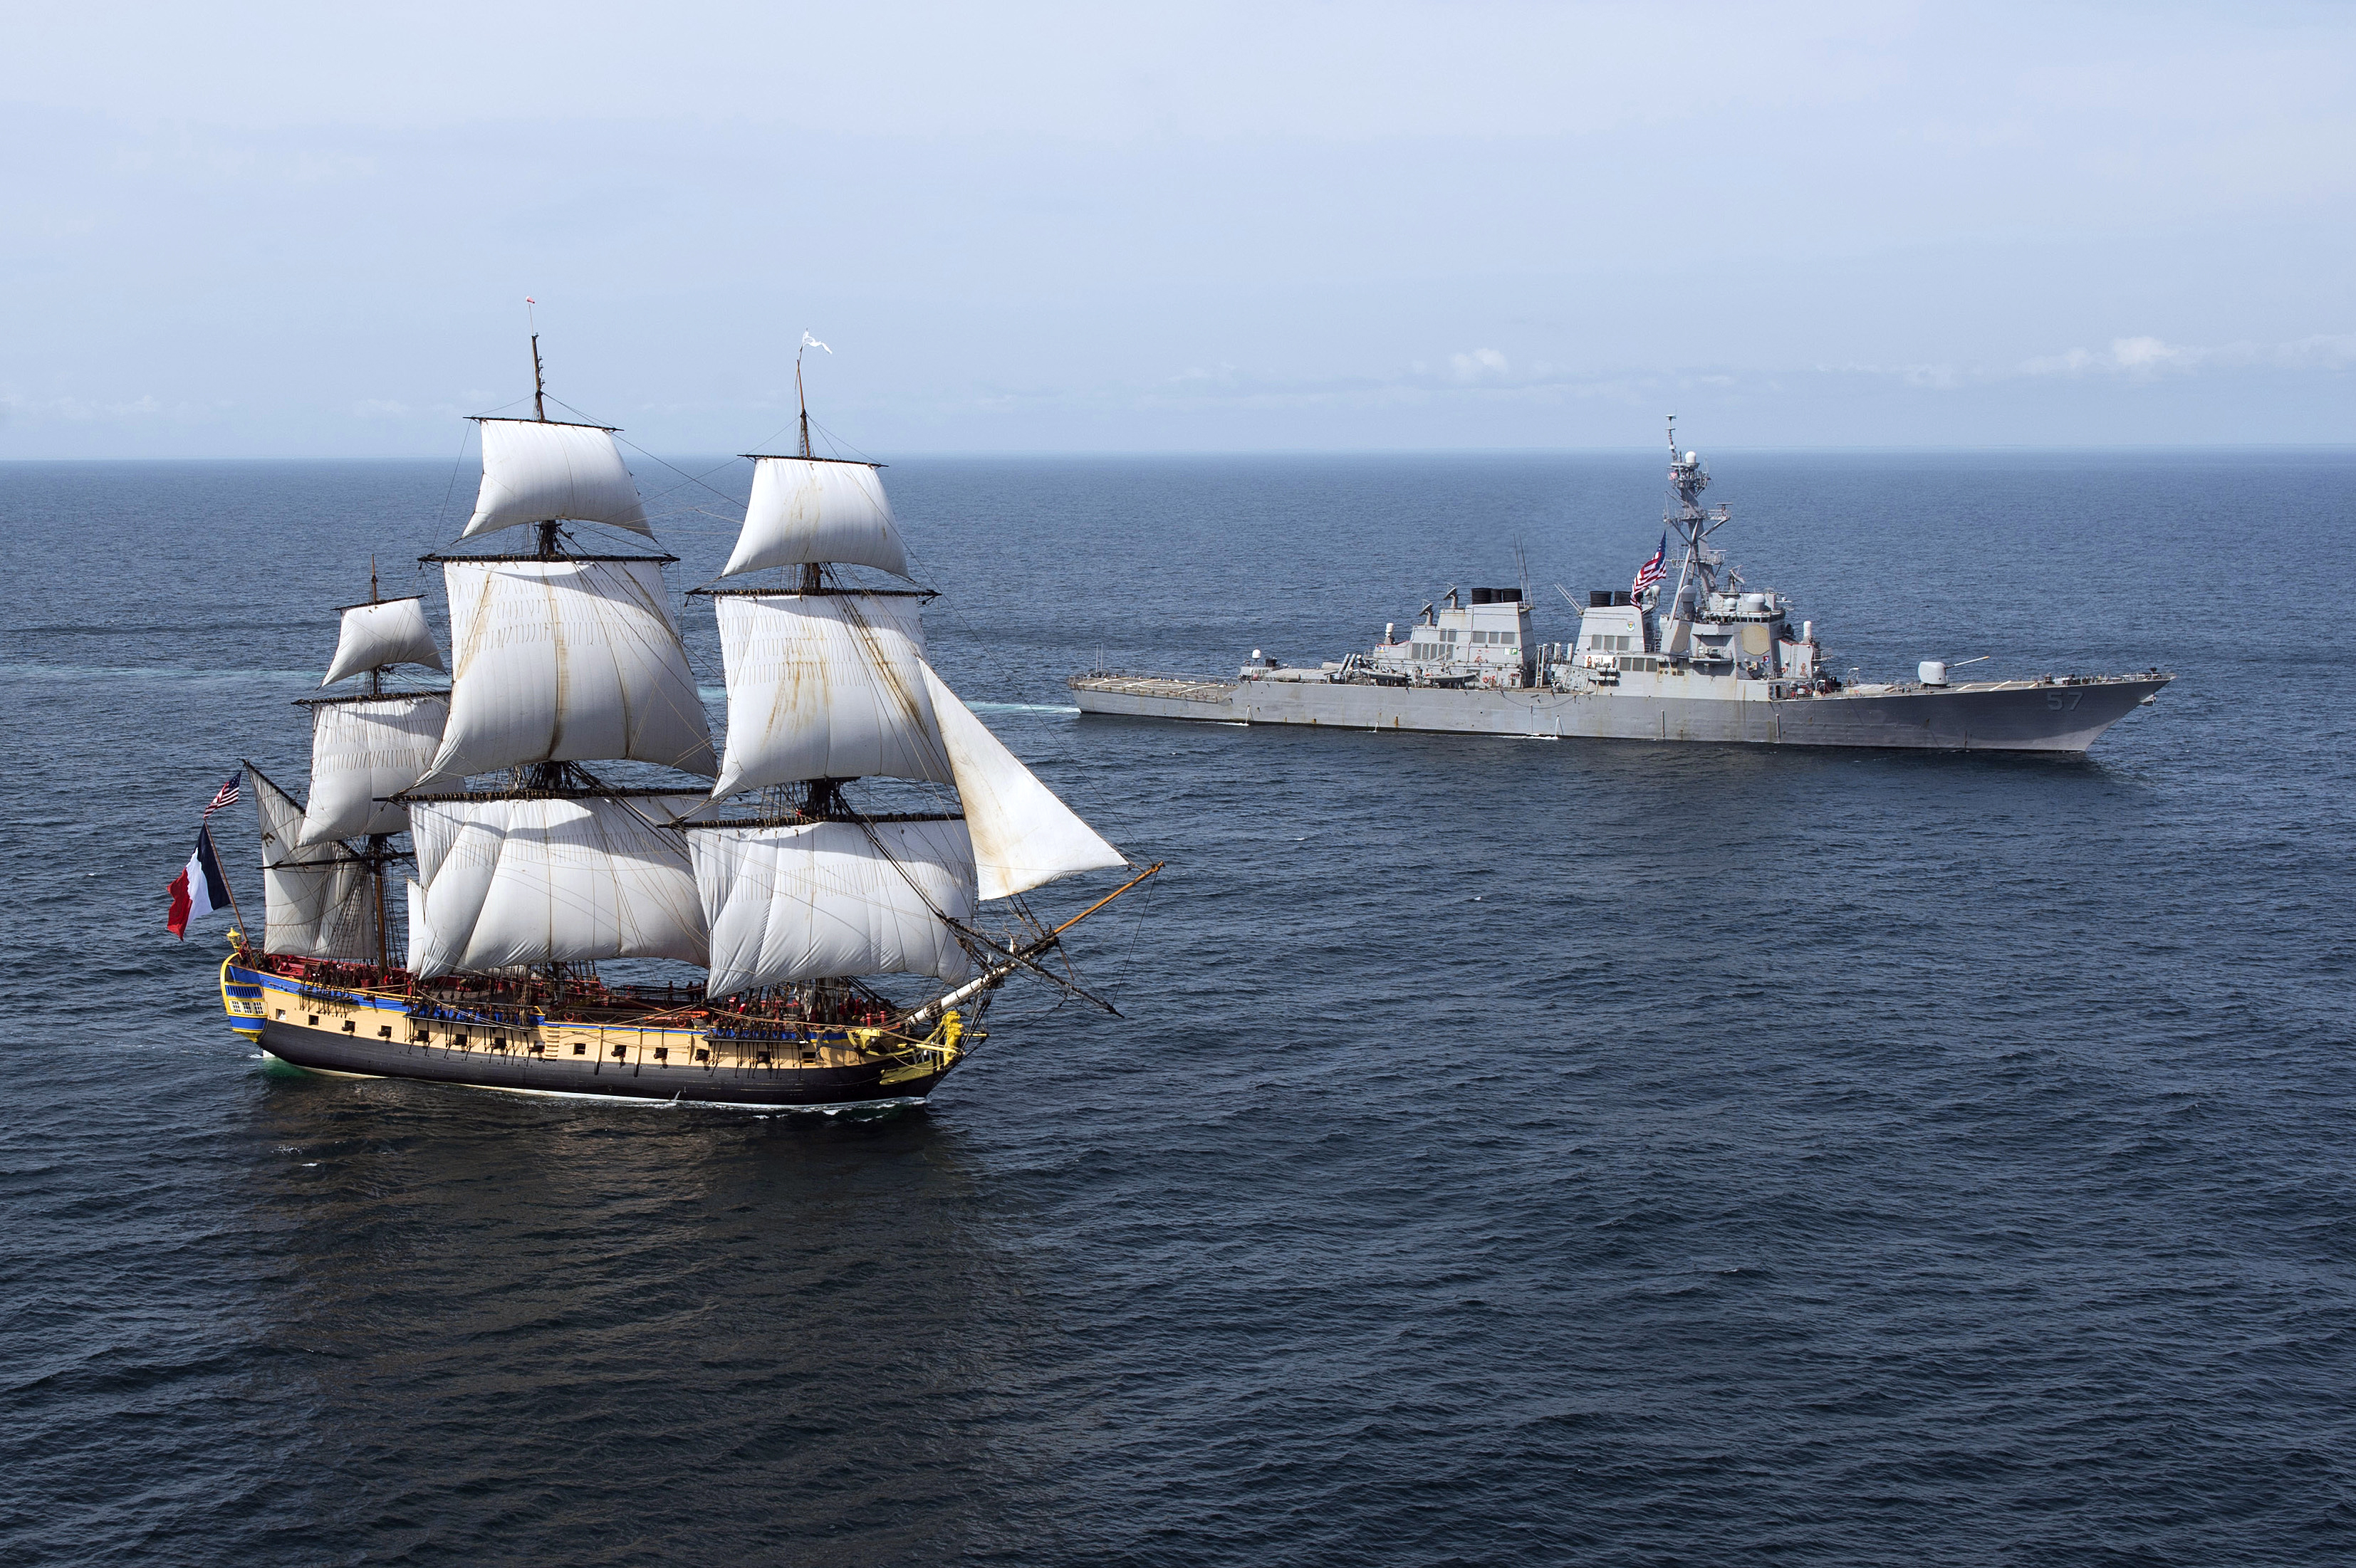 The_Hermione_being_escorted_by_the_USS_M